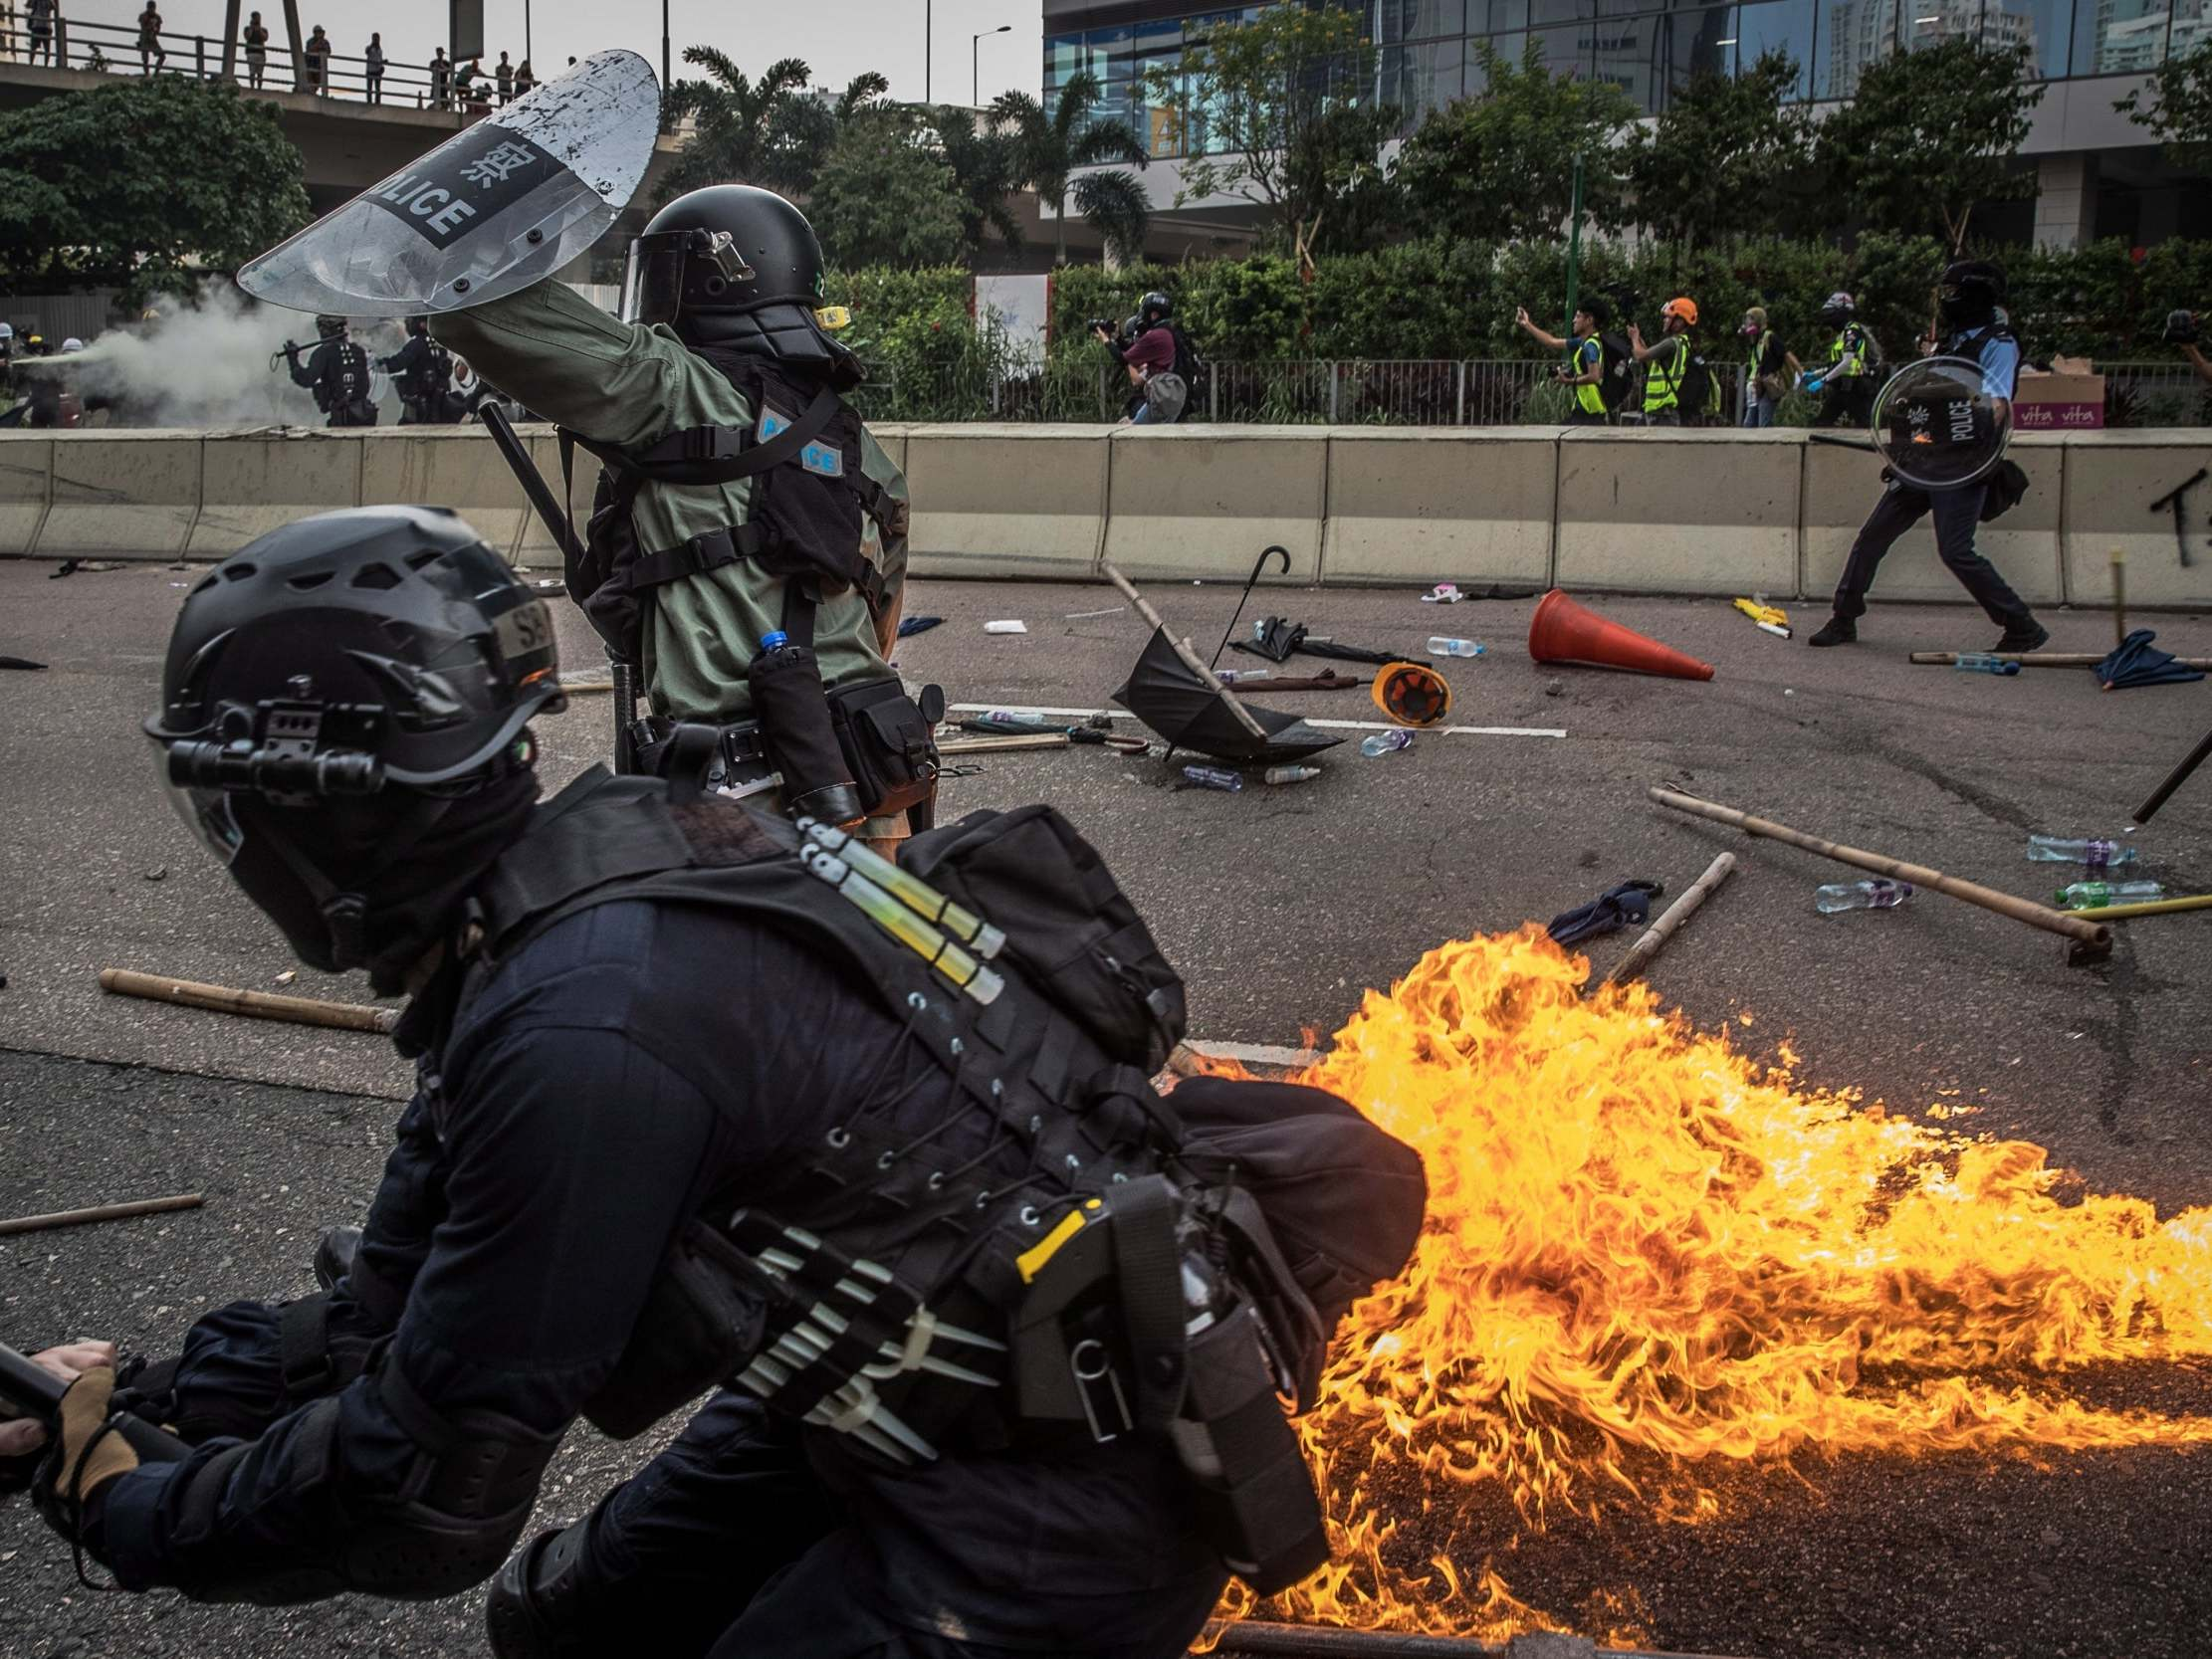 Hong Kong: Gasoline bombs, bricks and tear gas thrown as chaos returns to anti-government protests